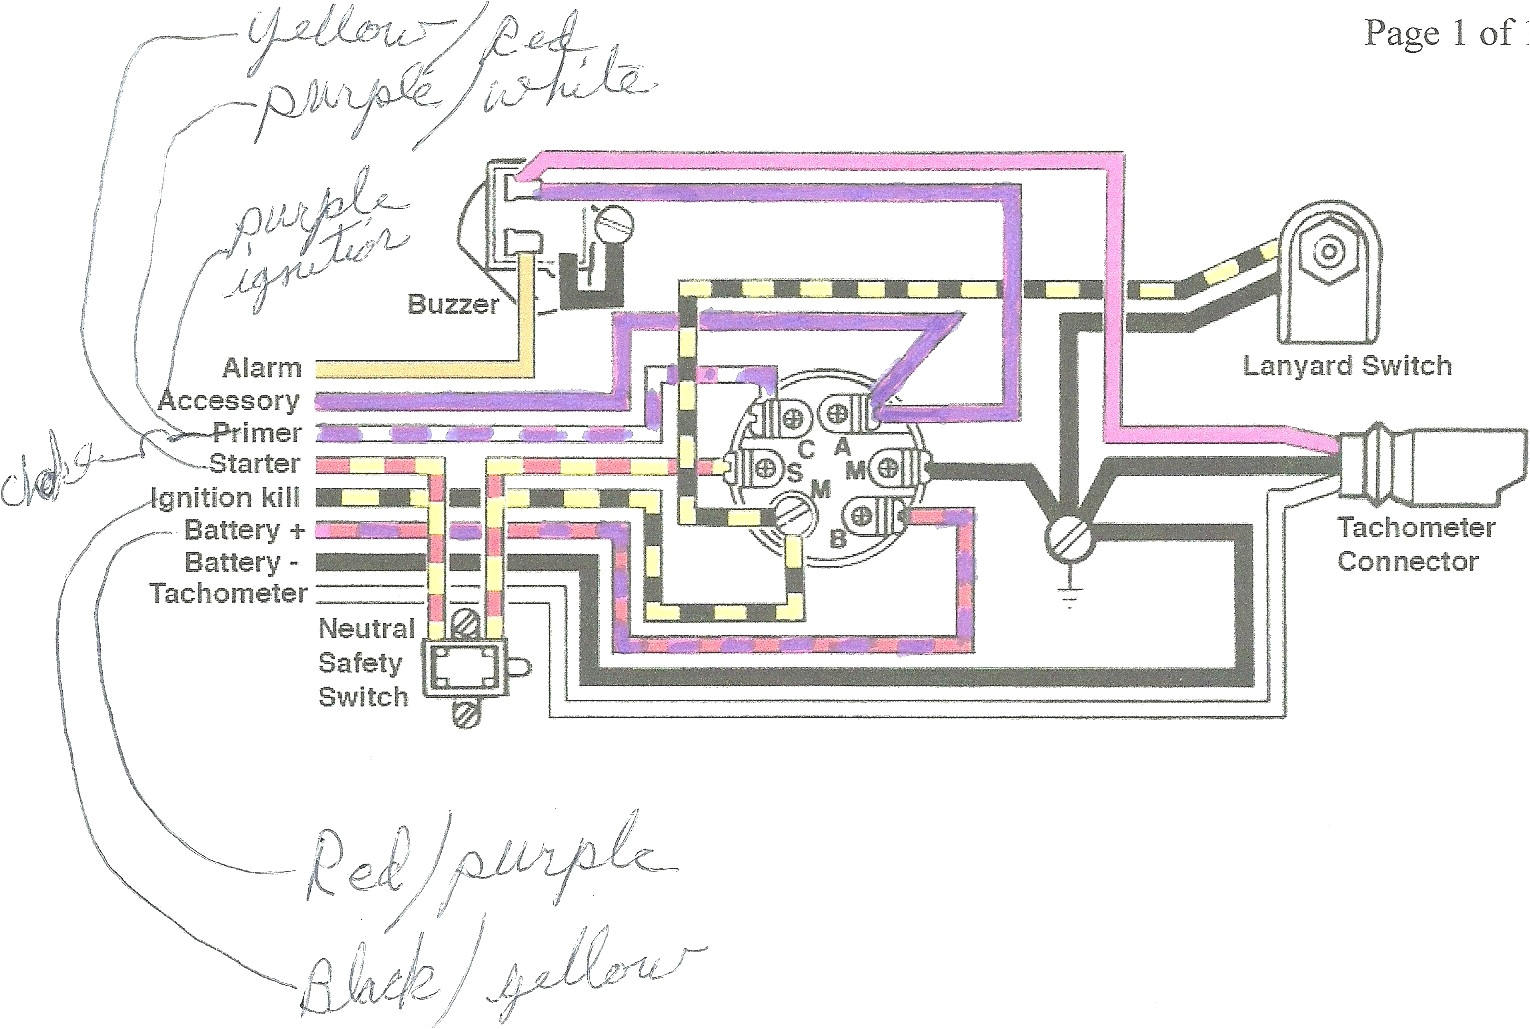 mercury outboard wiring diagram ignition switch free wiring diagram mercury outboard wiring diagram ignition switch